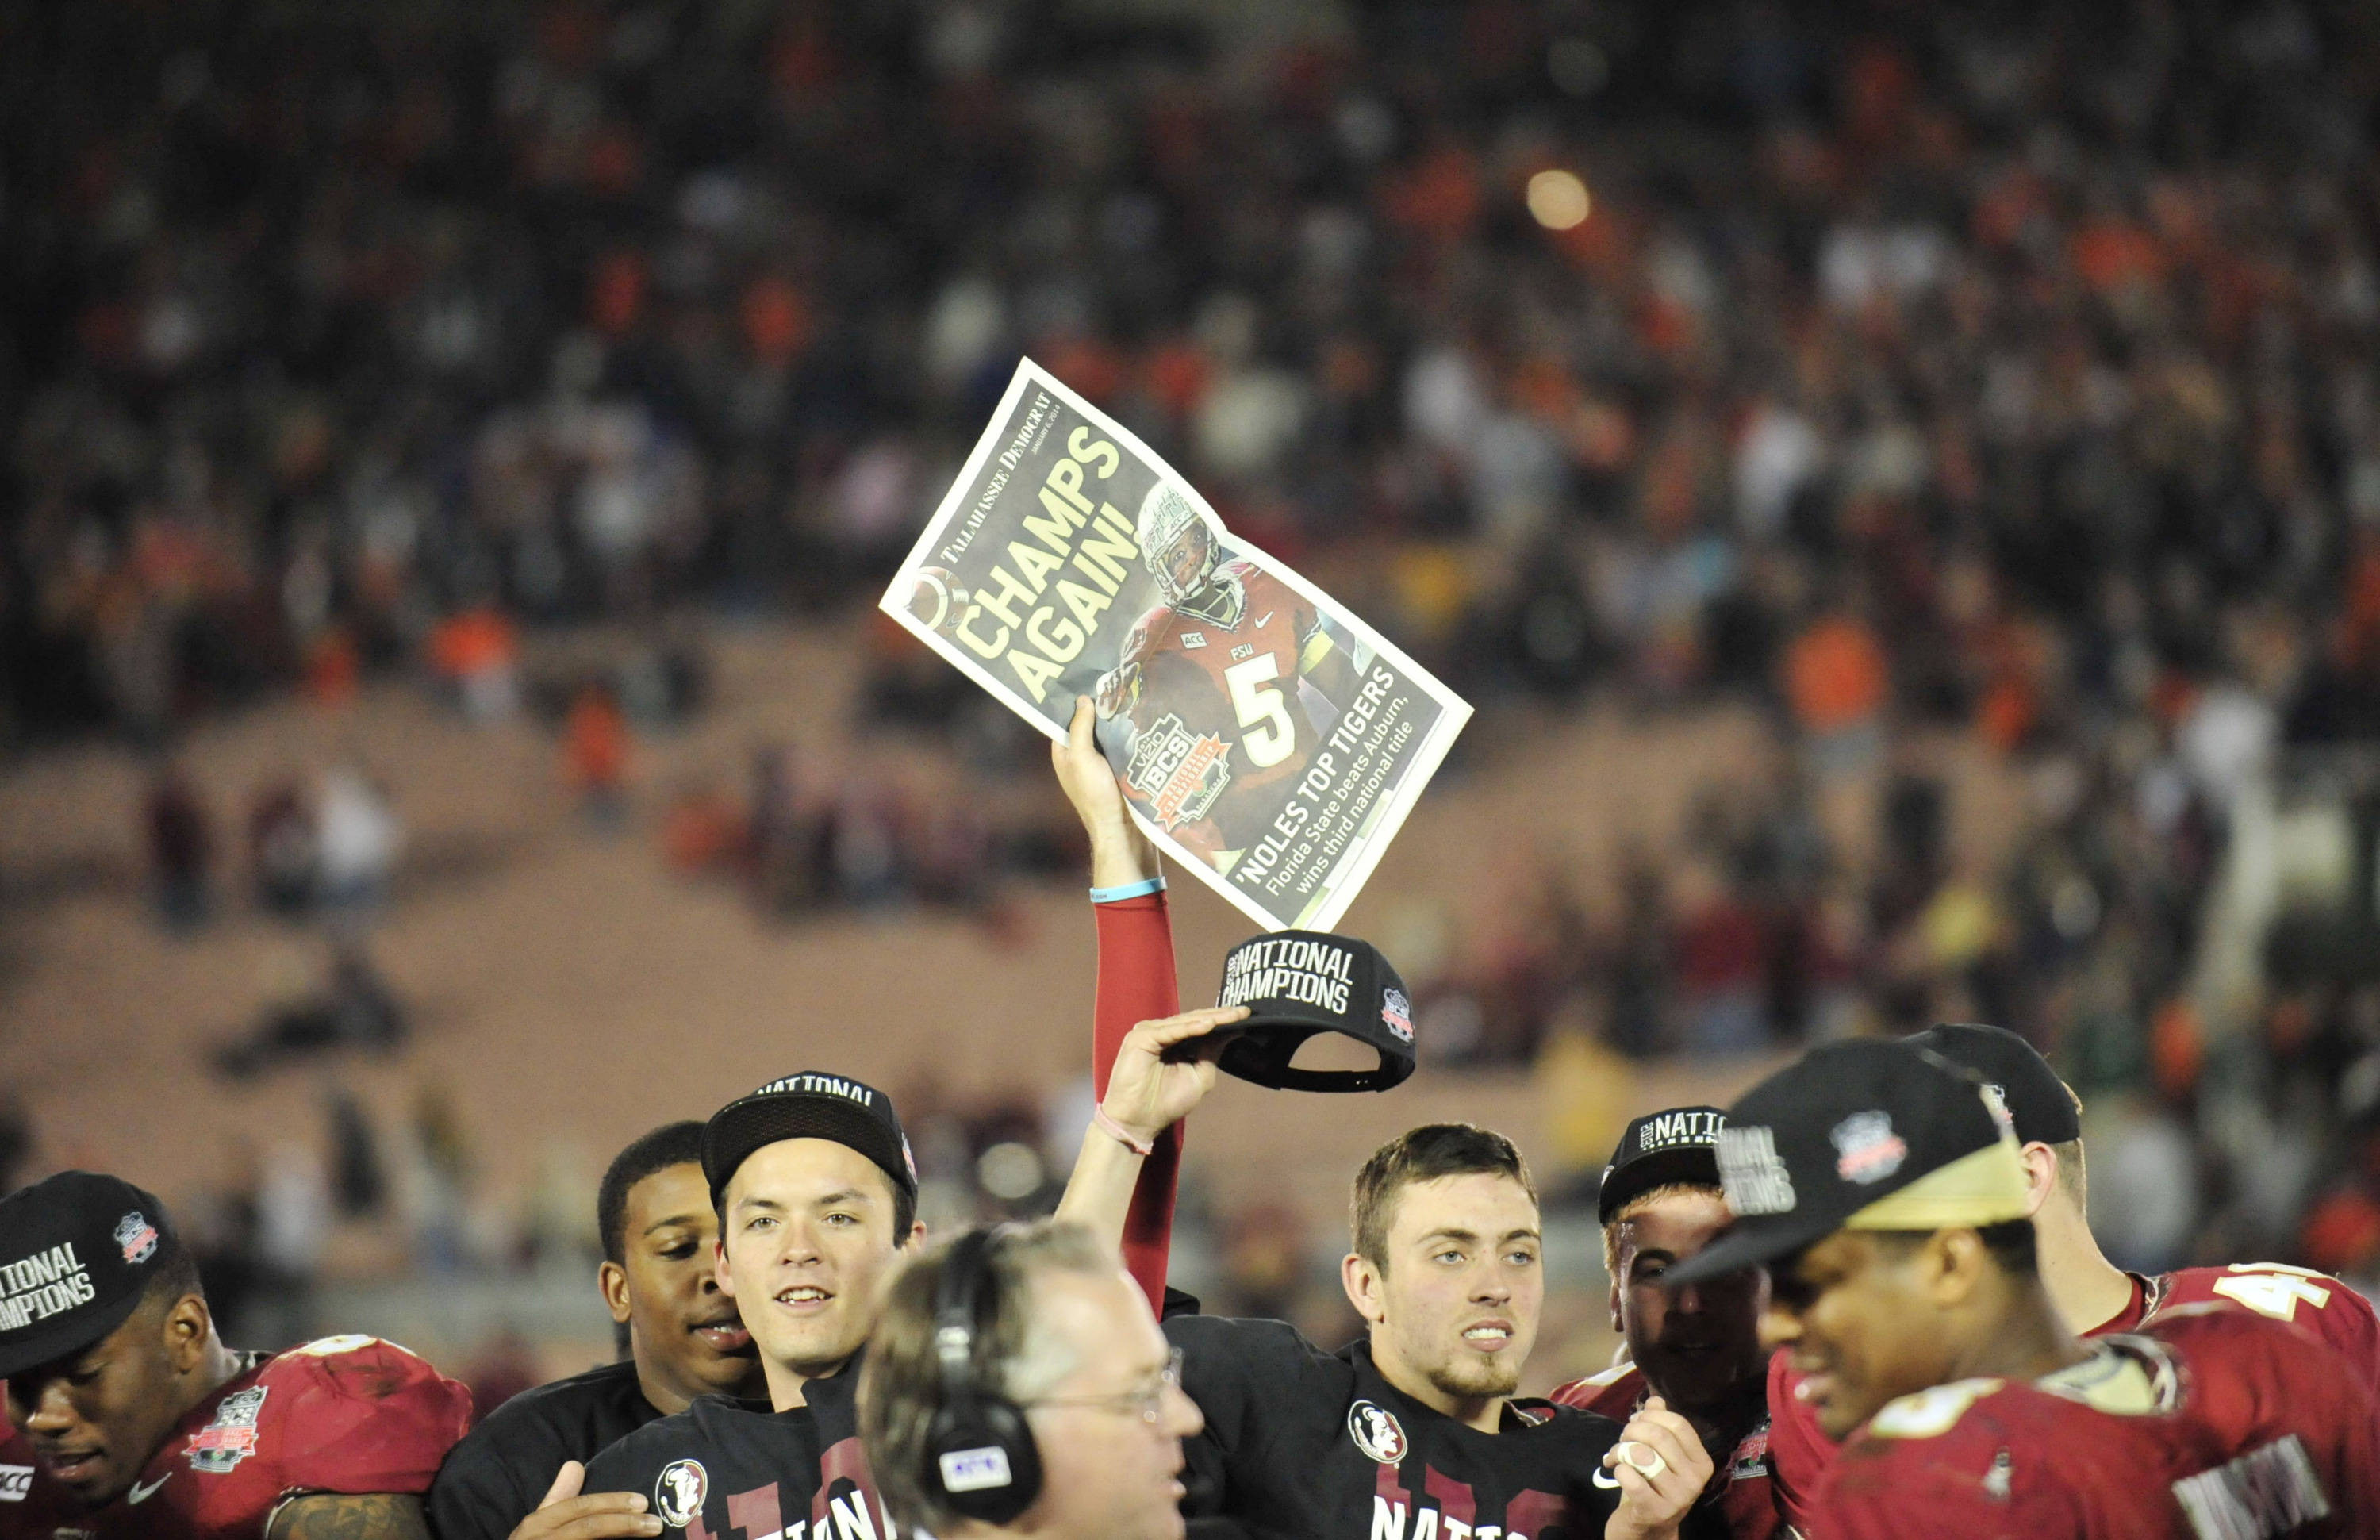 Jan 6, 2014; Pasadena, CA, USA; Florida State Seminoles players celebrate after the 2014 BCS National Championship game against the Auburn Tigers at the Rose Bowl. The Seminoles defeated the Tigers 34-31. Mandatory Credit: Gary A. Vasquez-USA TODAY Sports